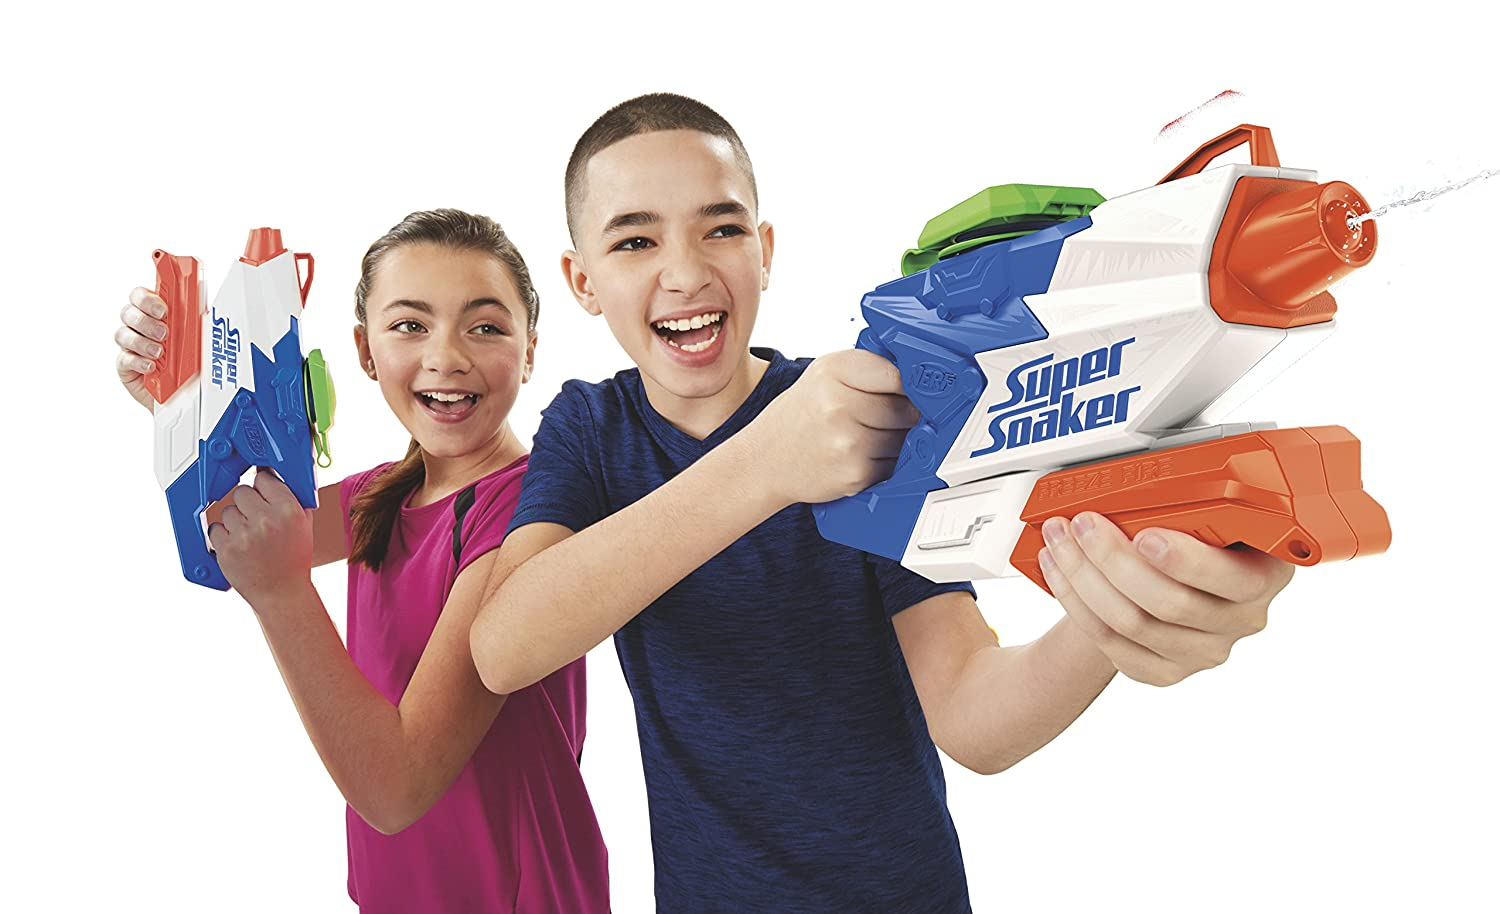 Nerf Super Soaker FreezeFire 2.0 Sports Toys & Outdoor Pool & Beach Toys umoonproductions.com